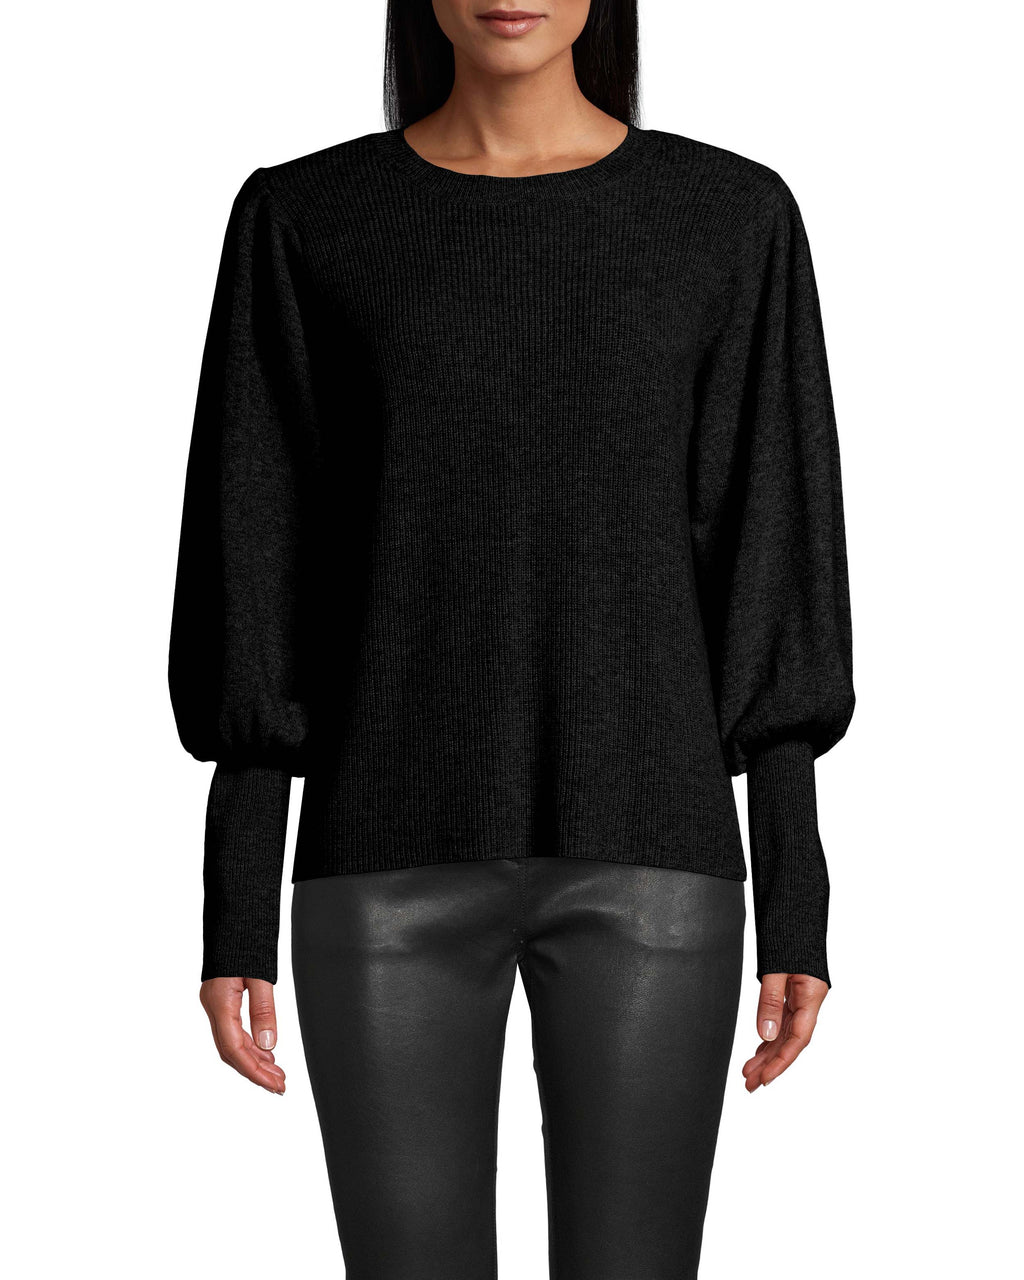 CT18043 - CASHMERE CREW NECK SWEATER W/ PADDED SHOULDER - tops - knitwear - THIS CASHMERE SWEATER IS A CLOSET ESSENTIAL. FEATURES A CHIC PUFFED SLEEVE, RIBBED CUFFS AND CLASSIC CREW NECK. Add 1 line break STYLIST TIP: PAIR WITH JEANS AND FASHION SNEAKERS FOR A CASUAL, DAYTIME LOOK.